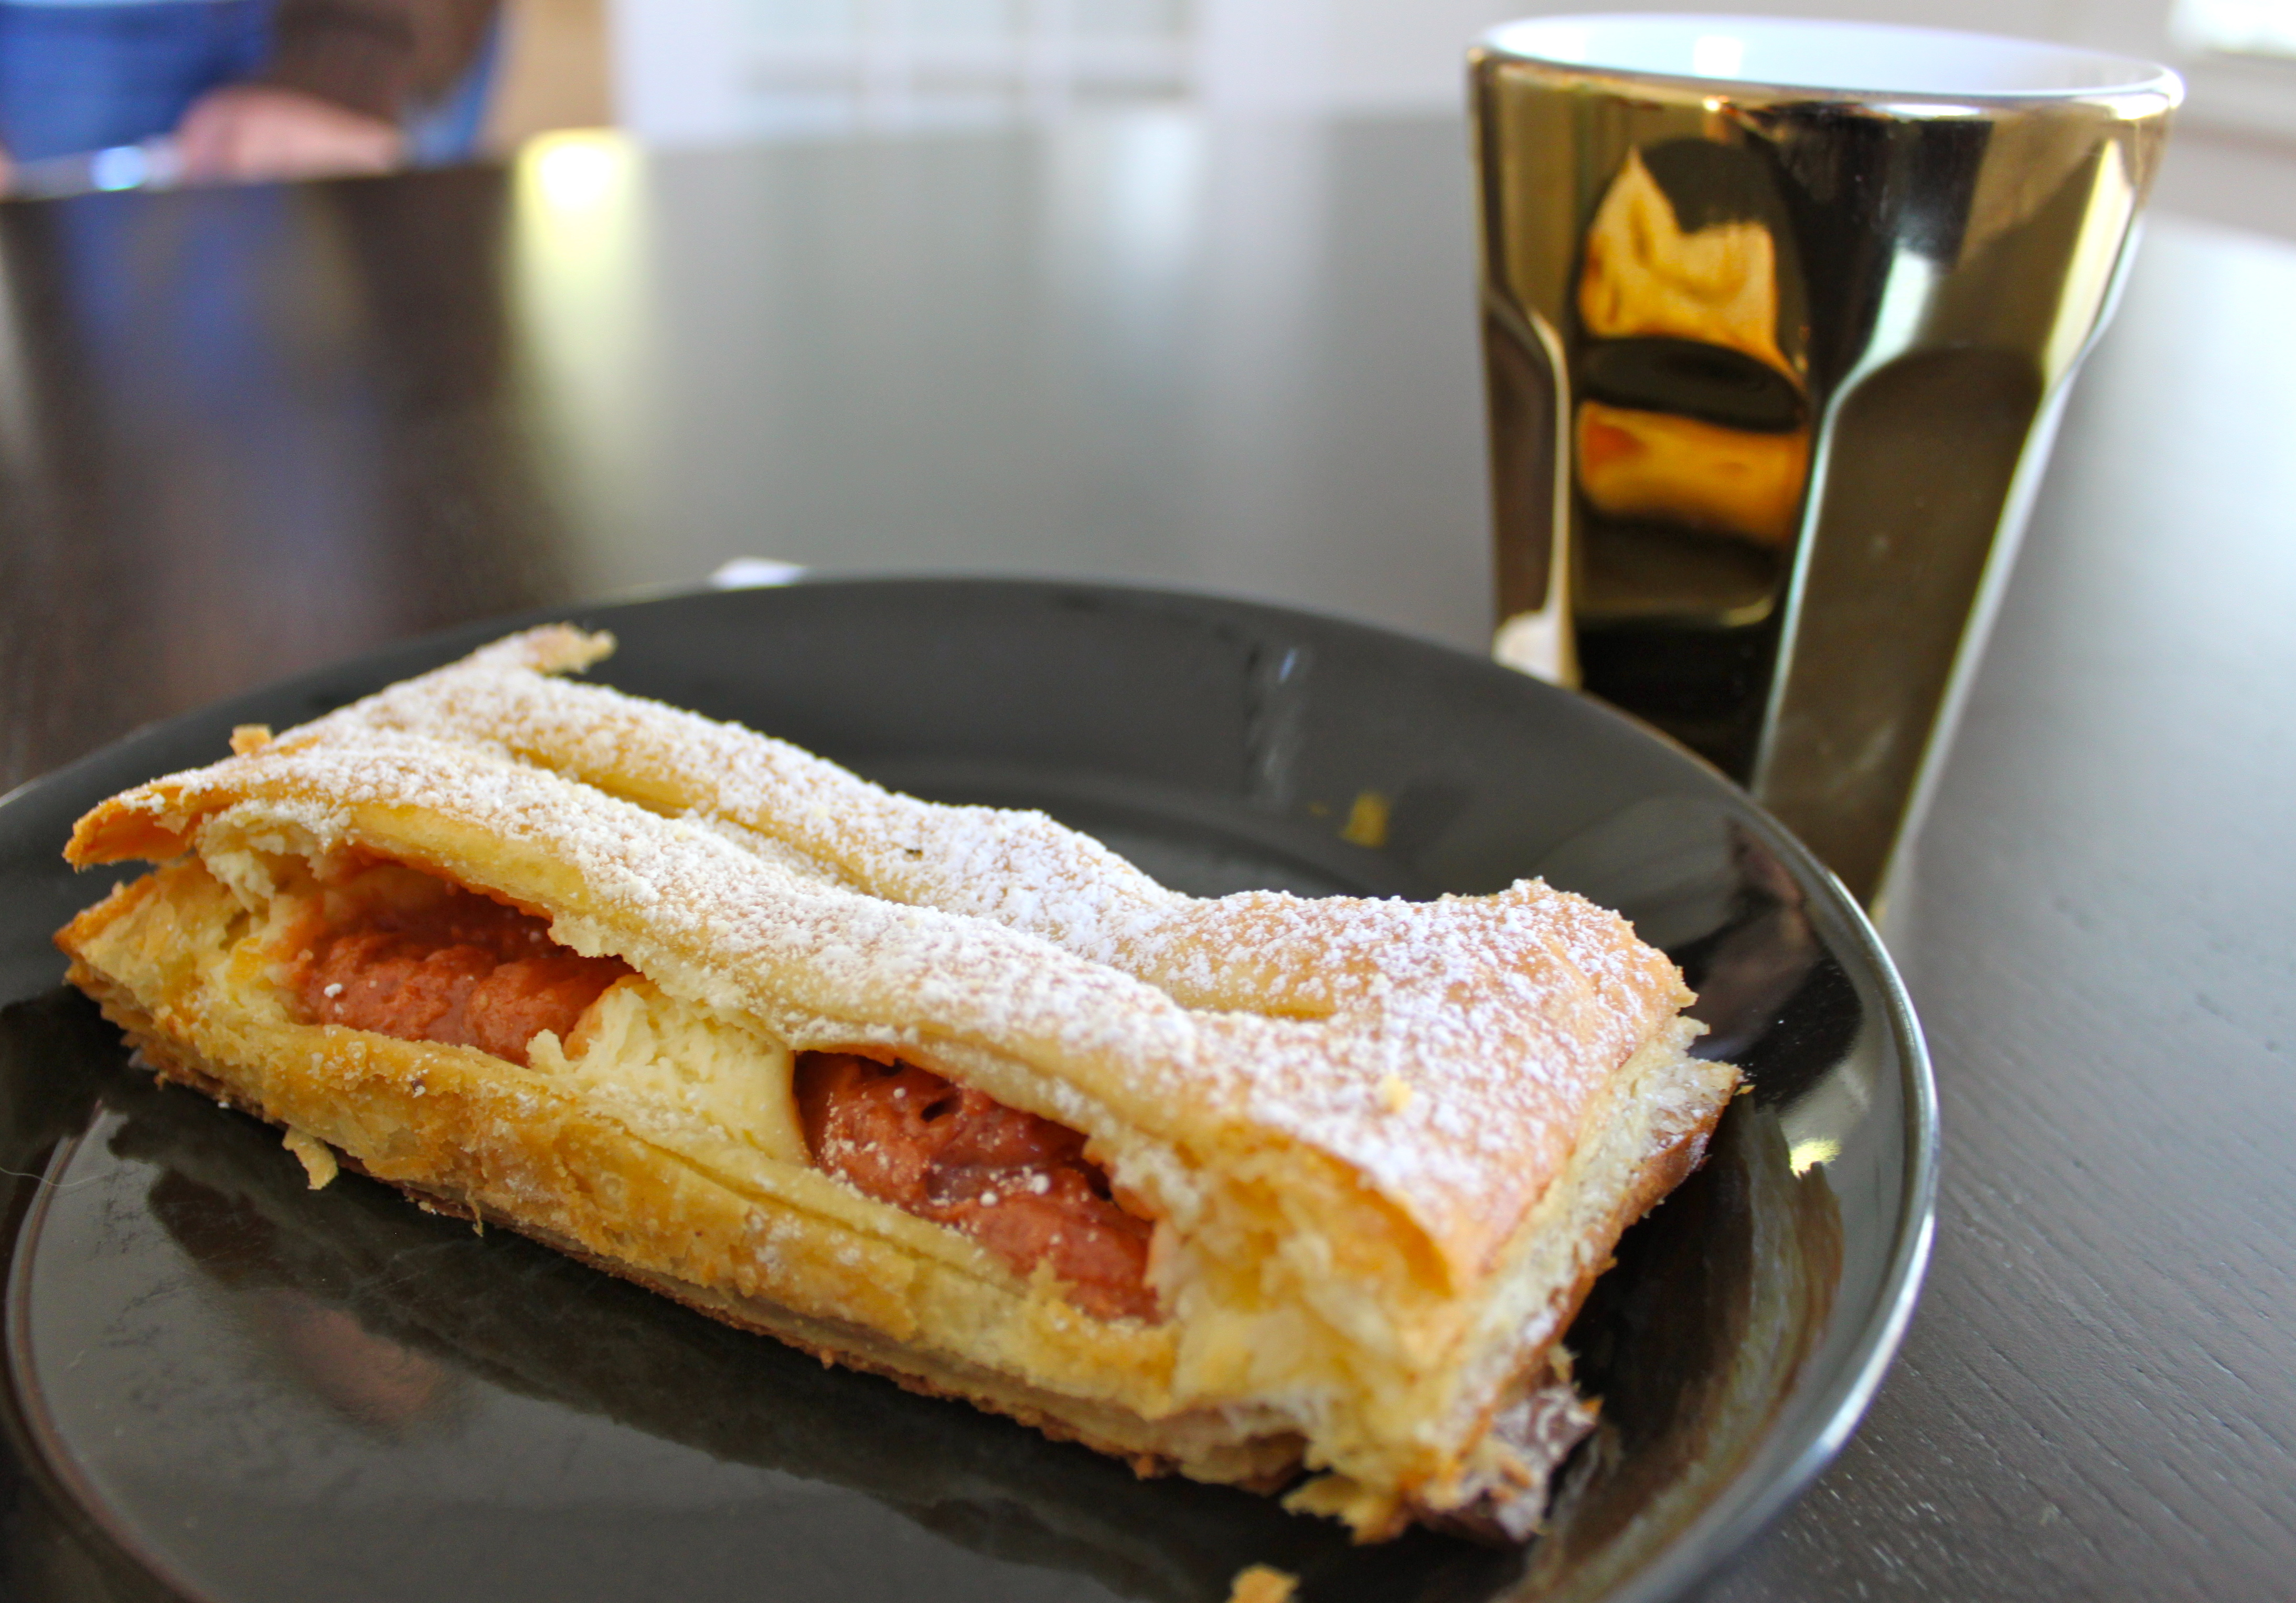 Guava & Cream Cheese Pastry | Mod Meals on Mendenhall